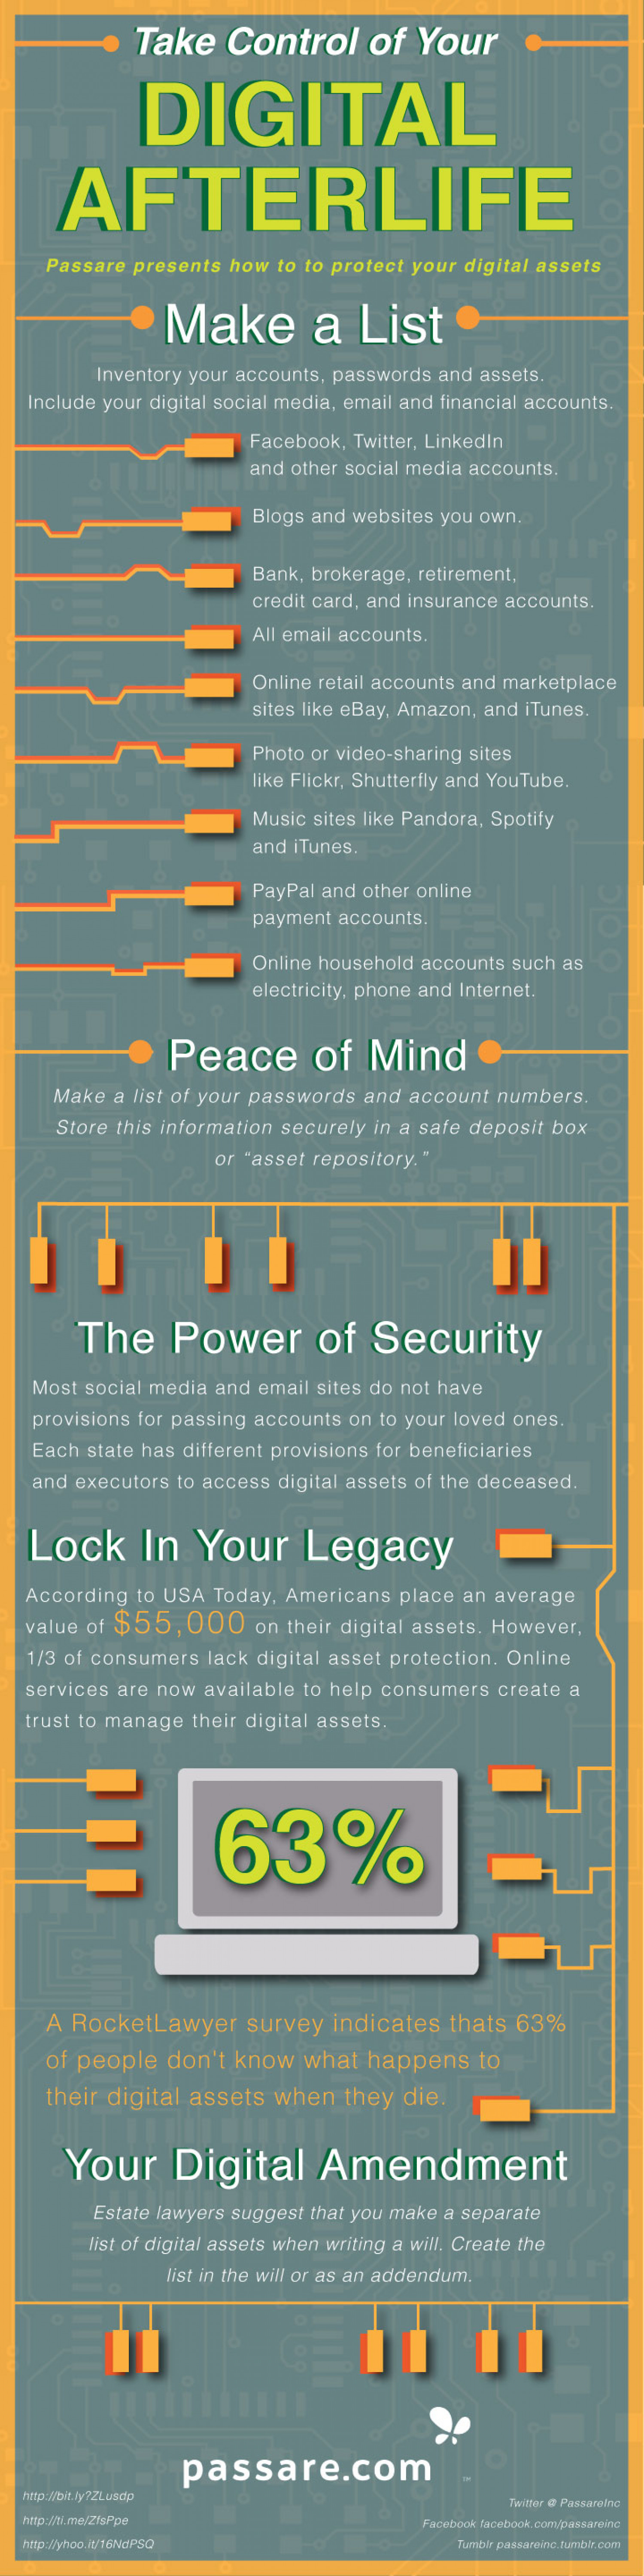 Take Control of Your Digital Afterlife Infographic